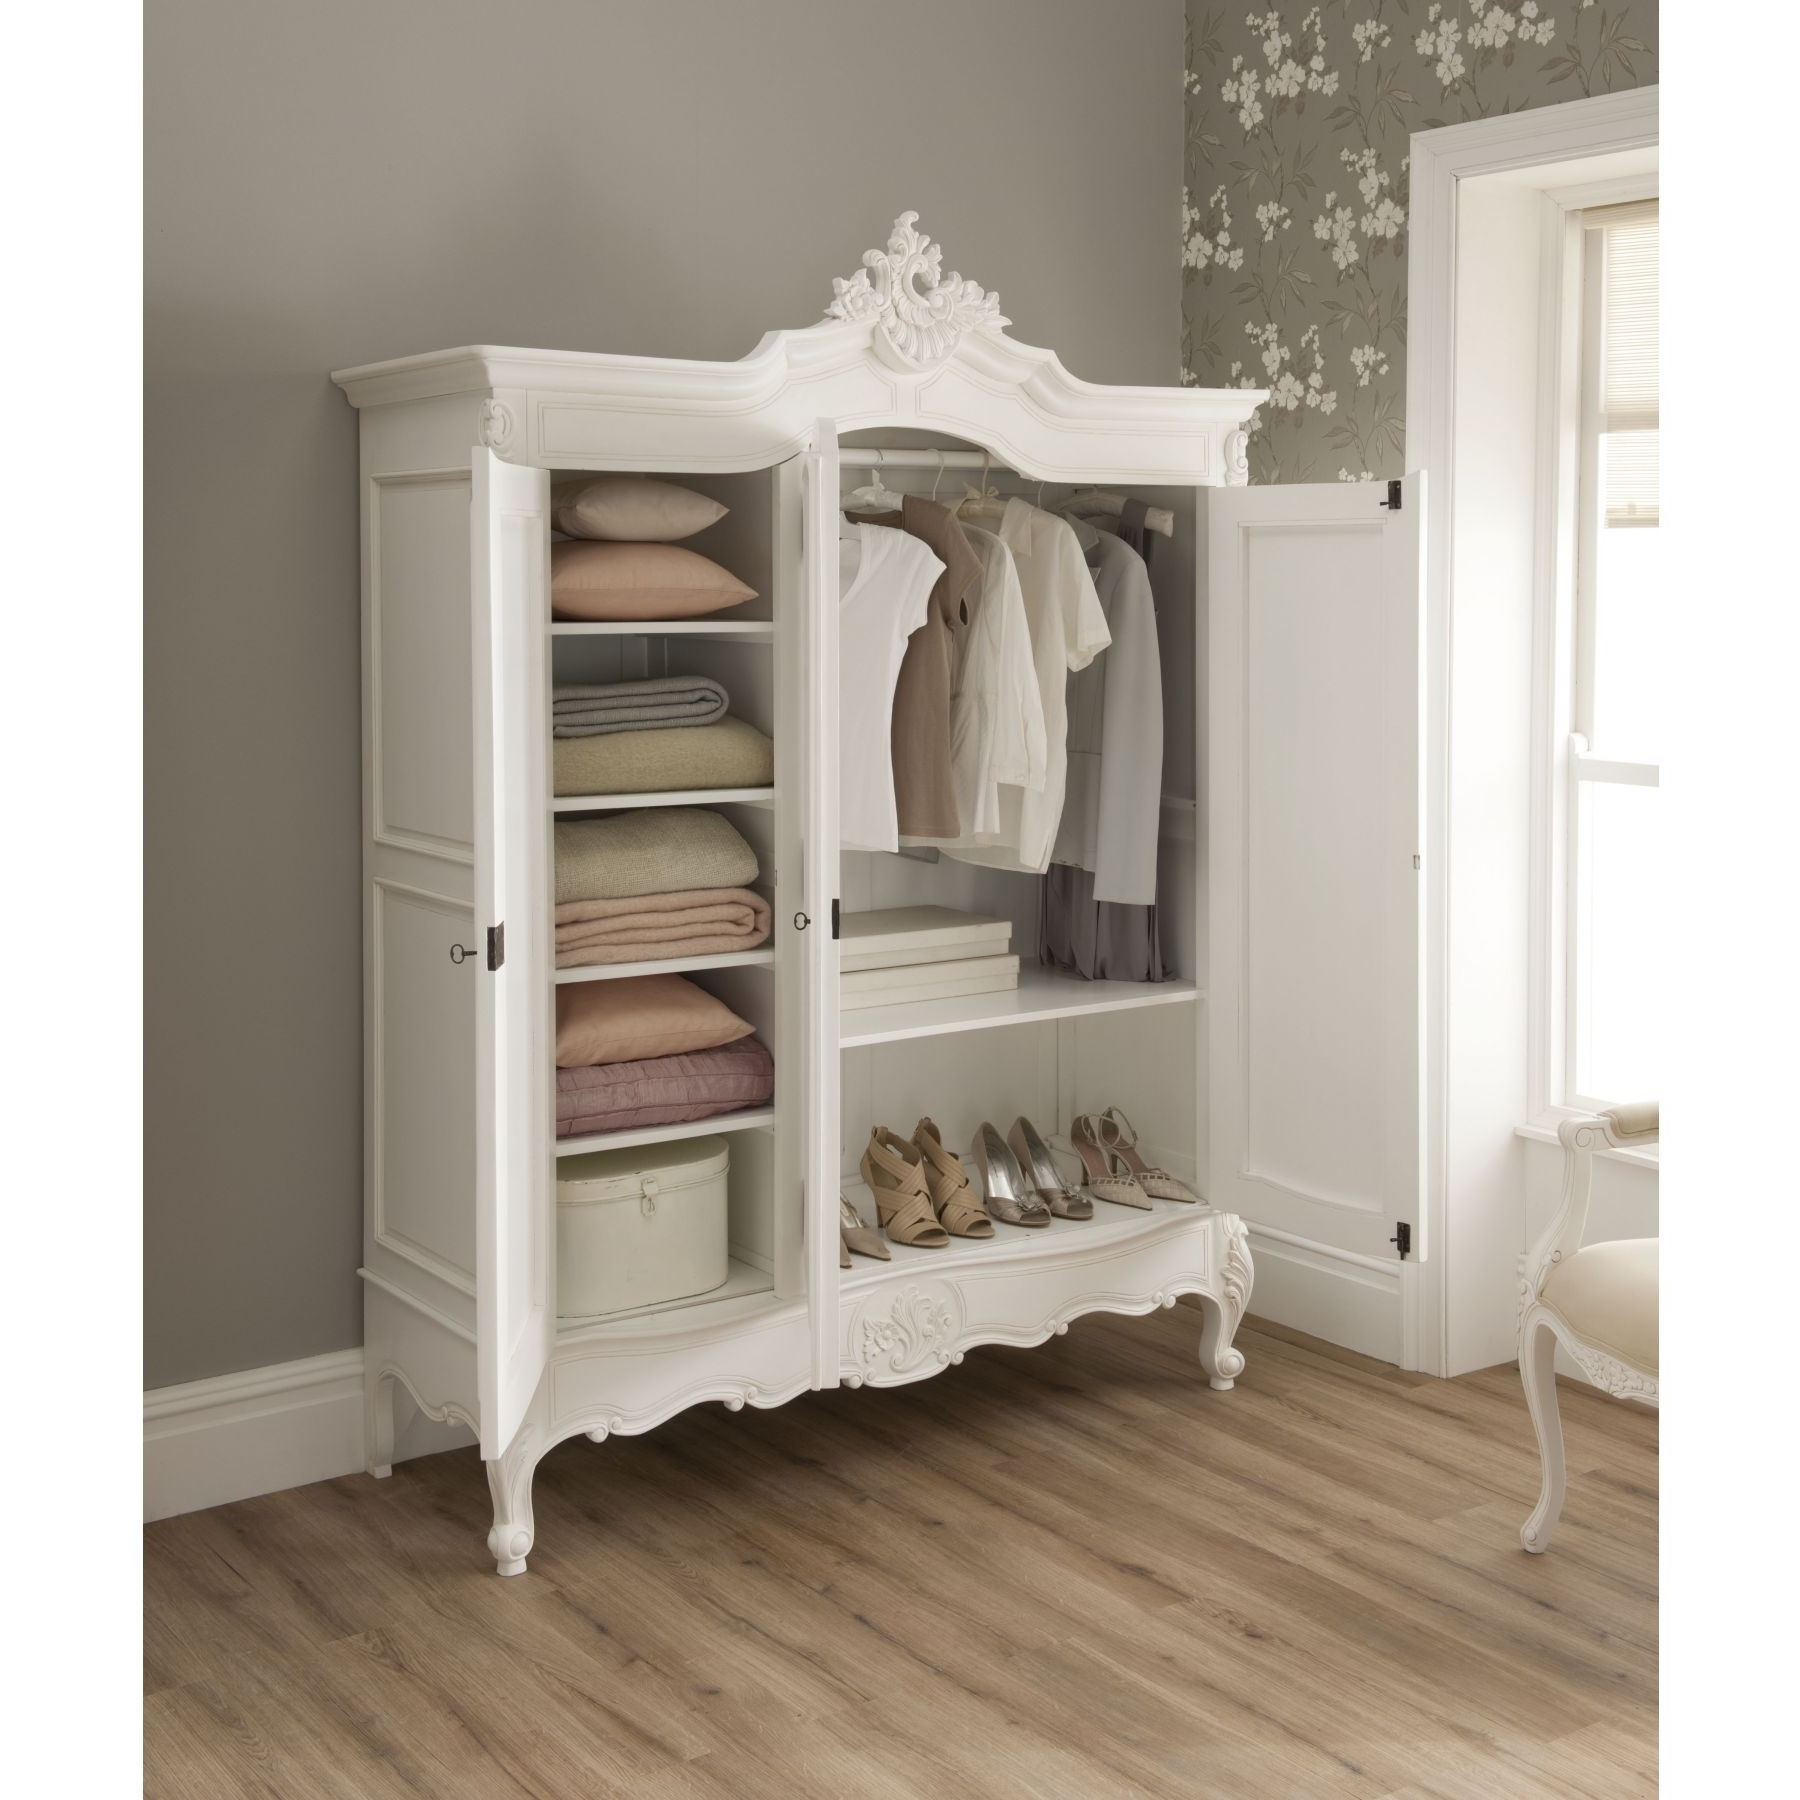 A Wardrobe Is The Perfect Addition To A Baby's Room To Stylishly In Current French Style Wardrobes (View 12 of 15)